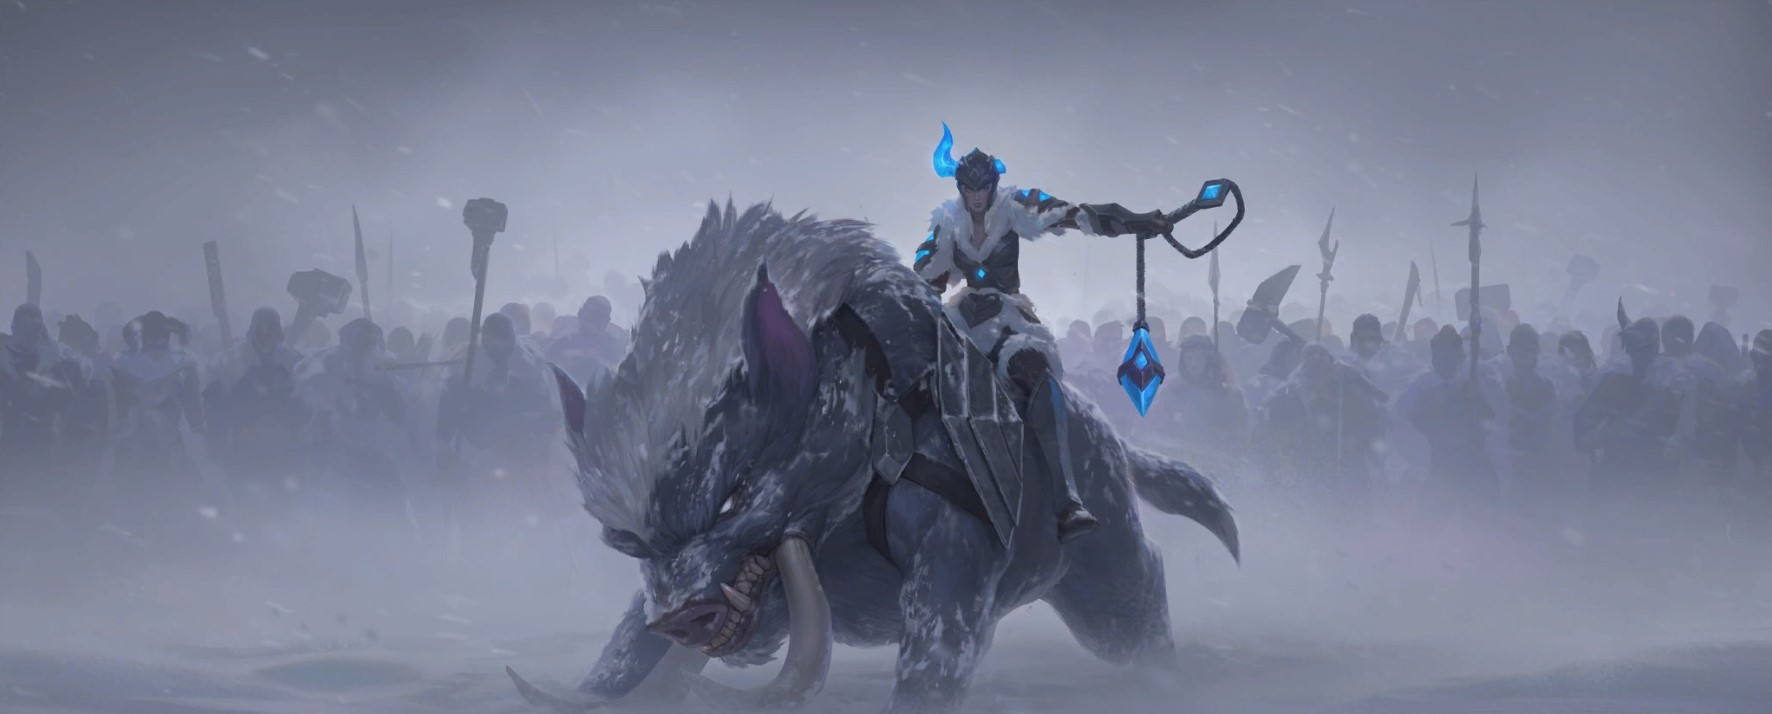 New Legends of Runeterra Card Impressions: Sejuani, Vulnerable and More